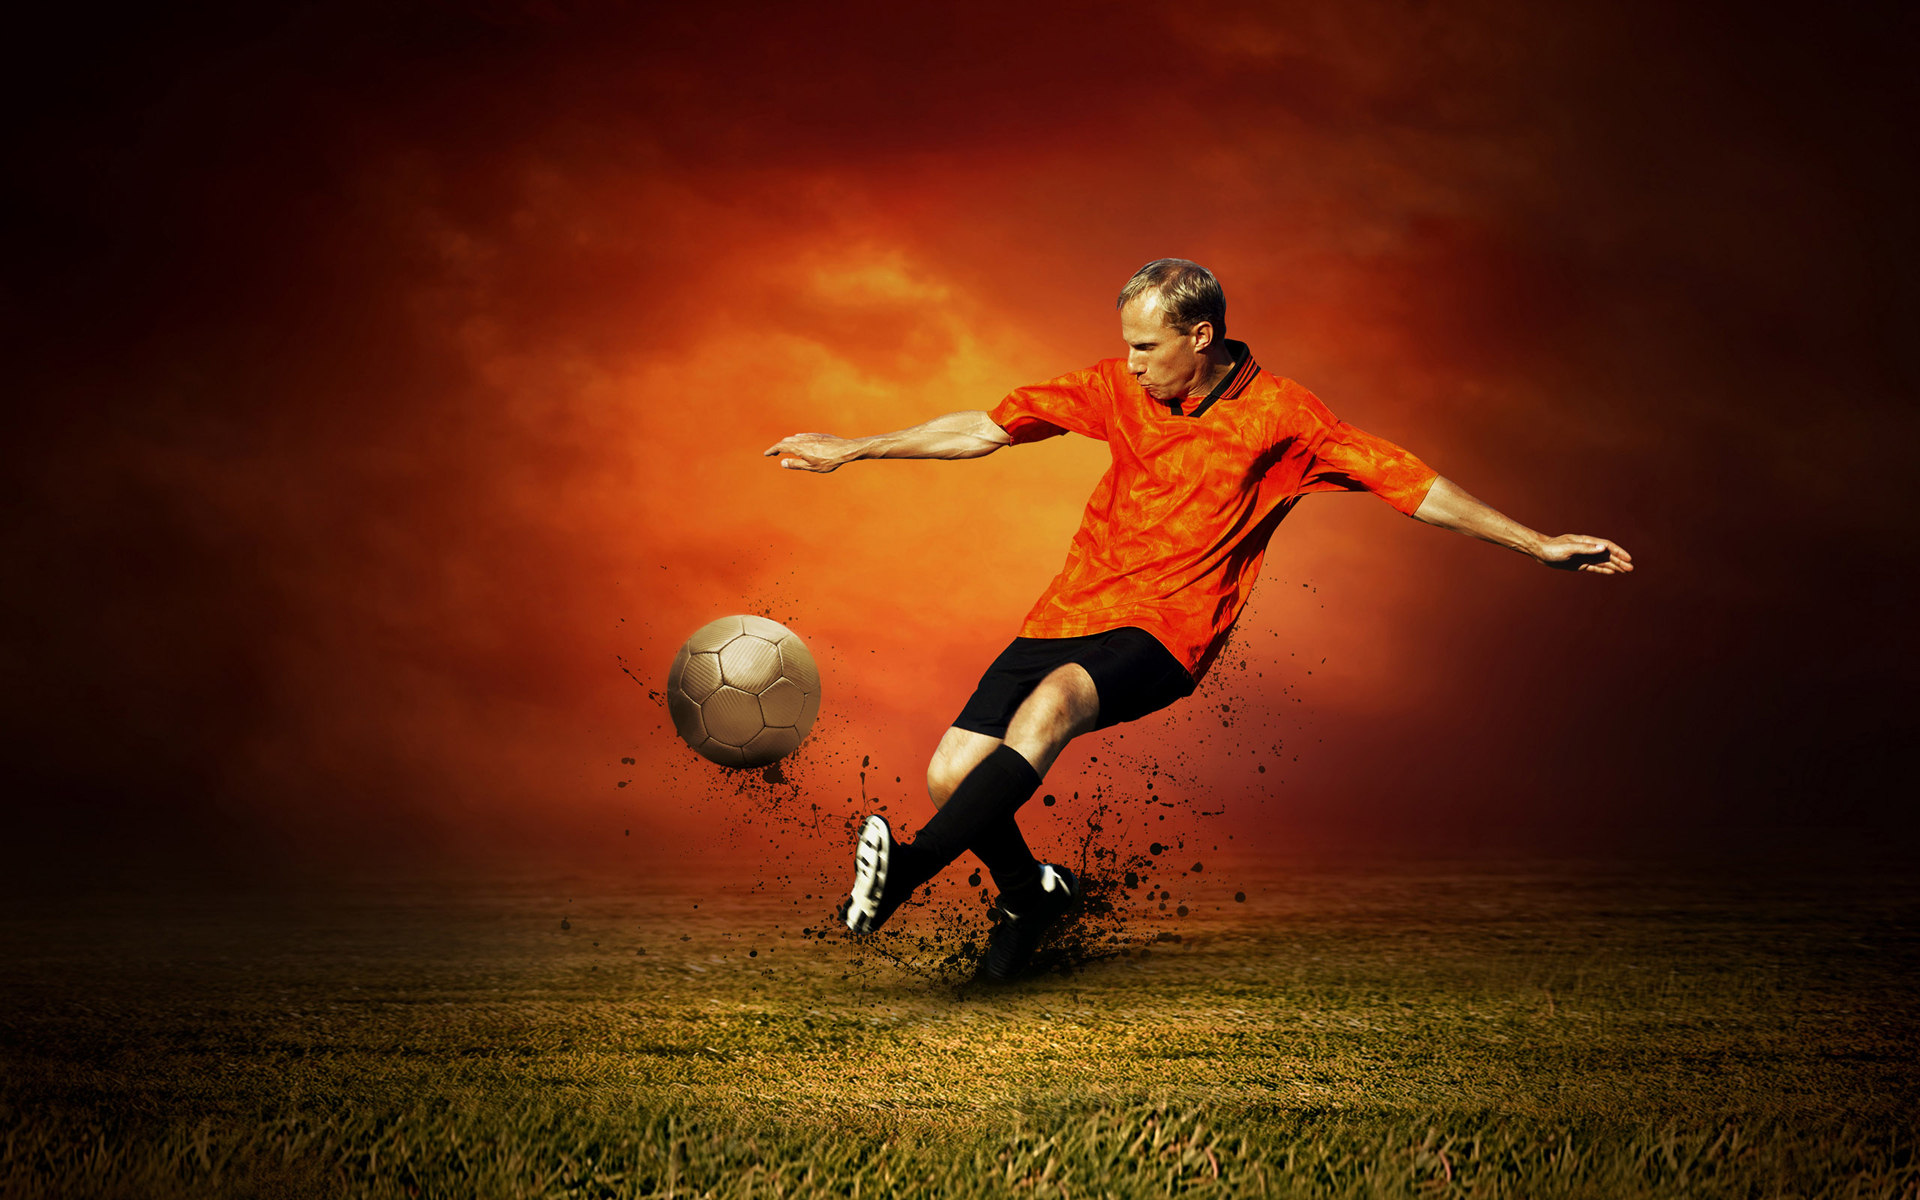 High Quality Soccer Wallpaper Full HD Pictures 1920x1200